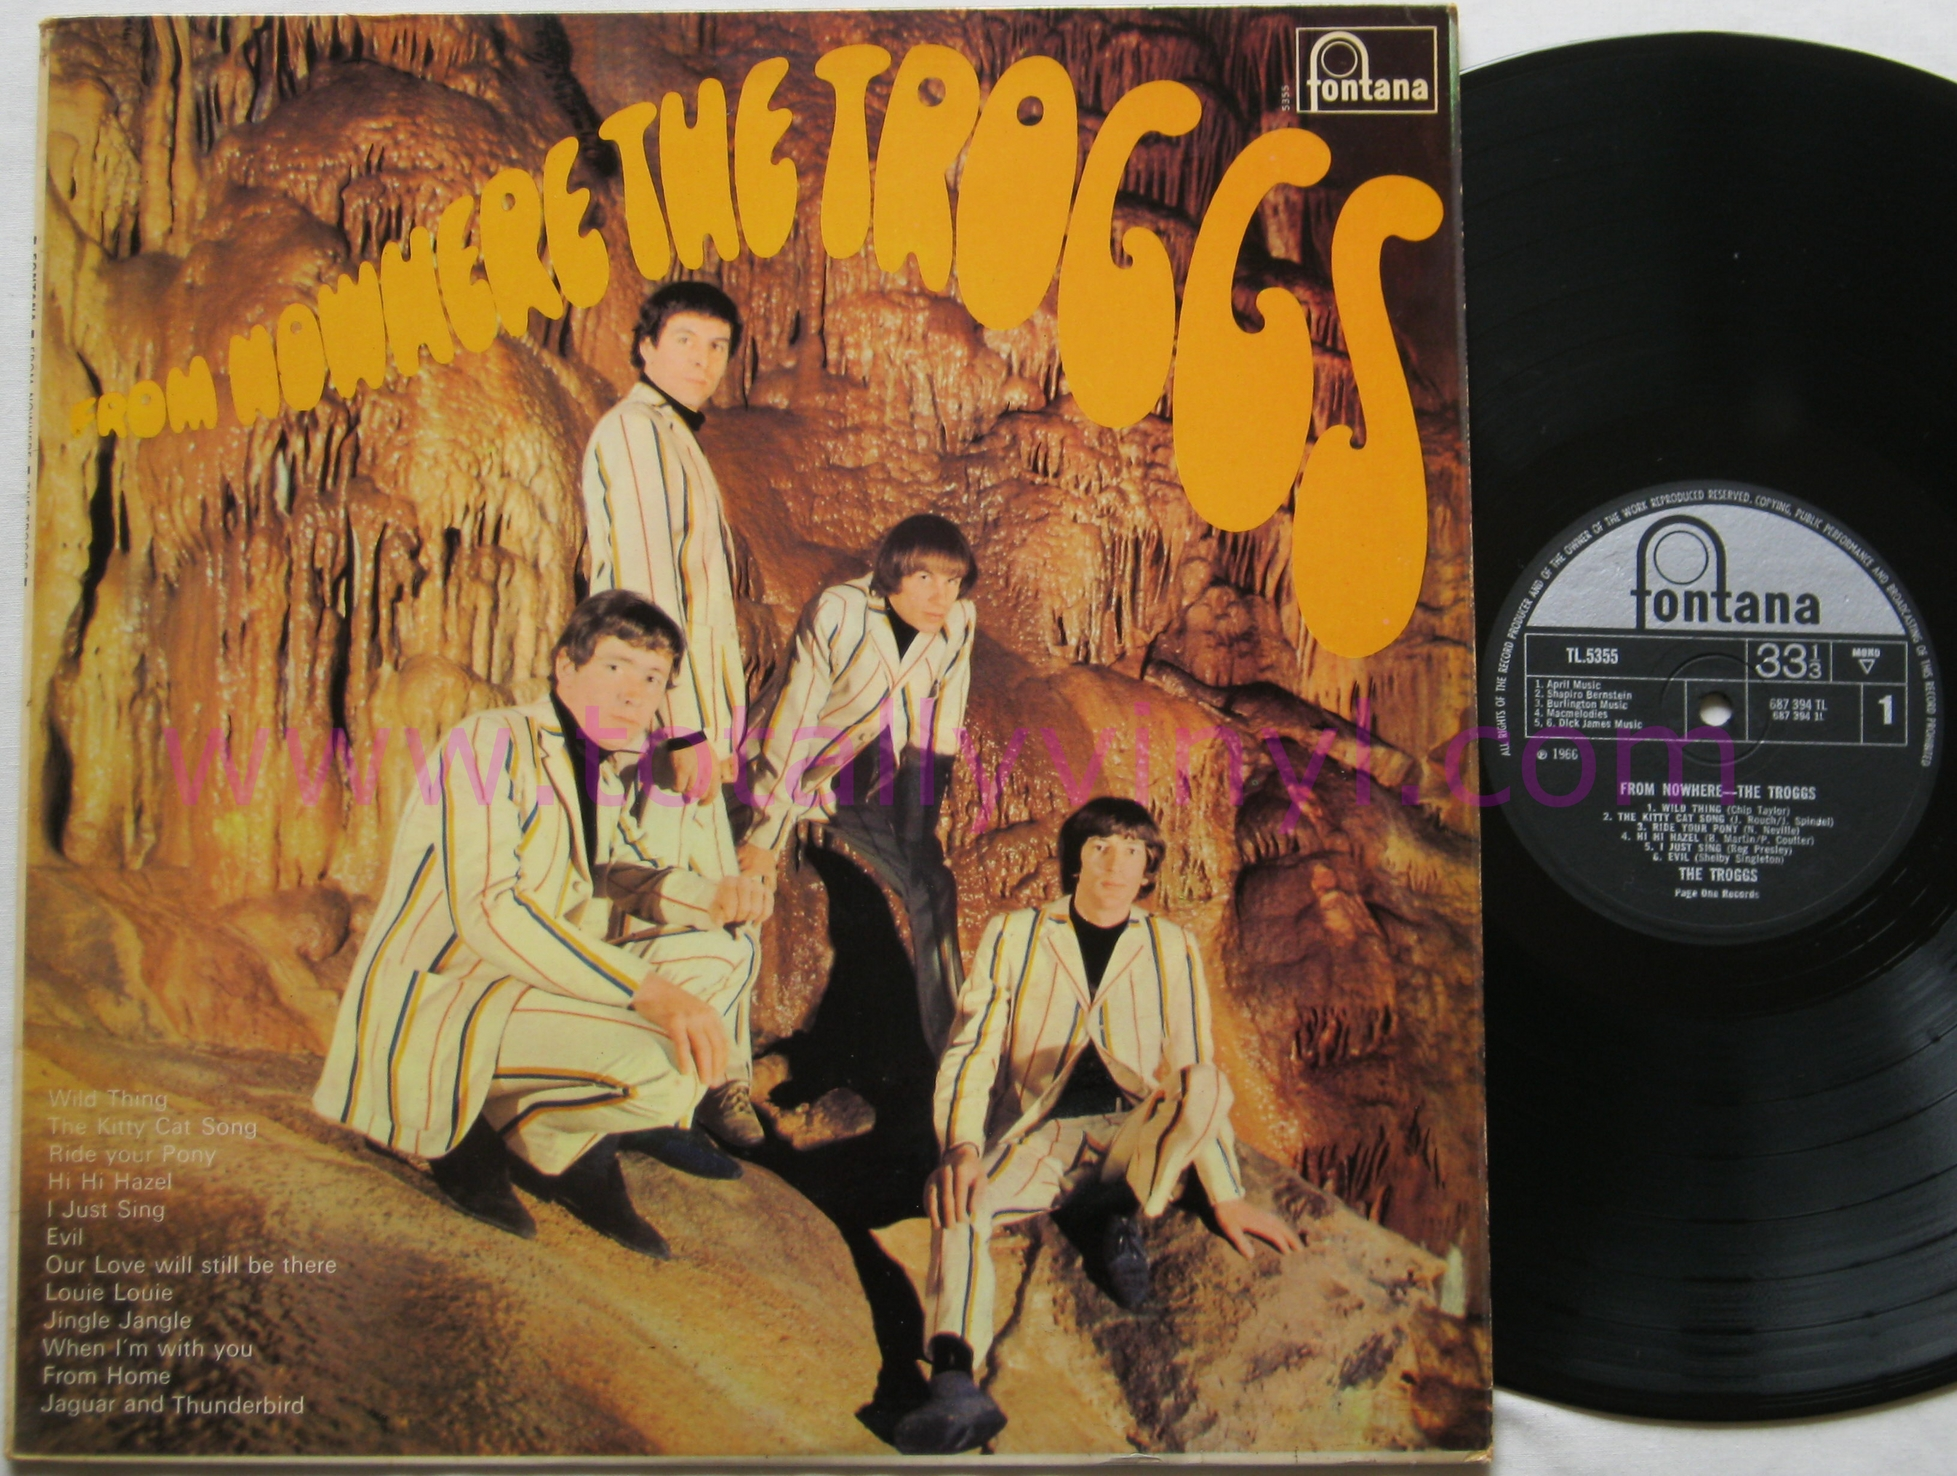 Totally Vinyl Records Troggs The From Nowhere Lp Vinyl